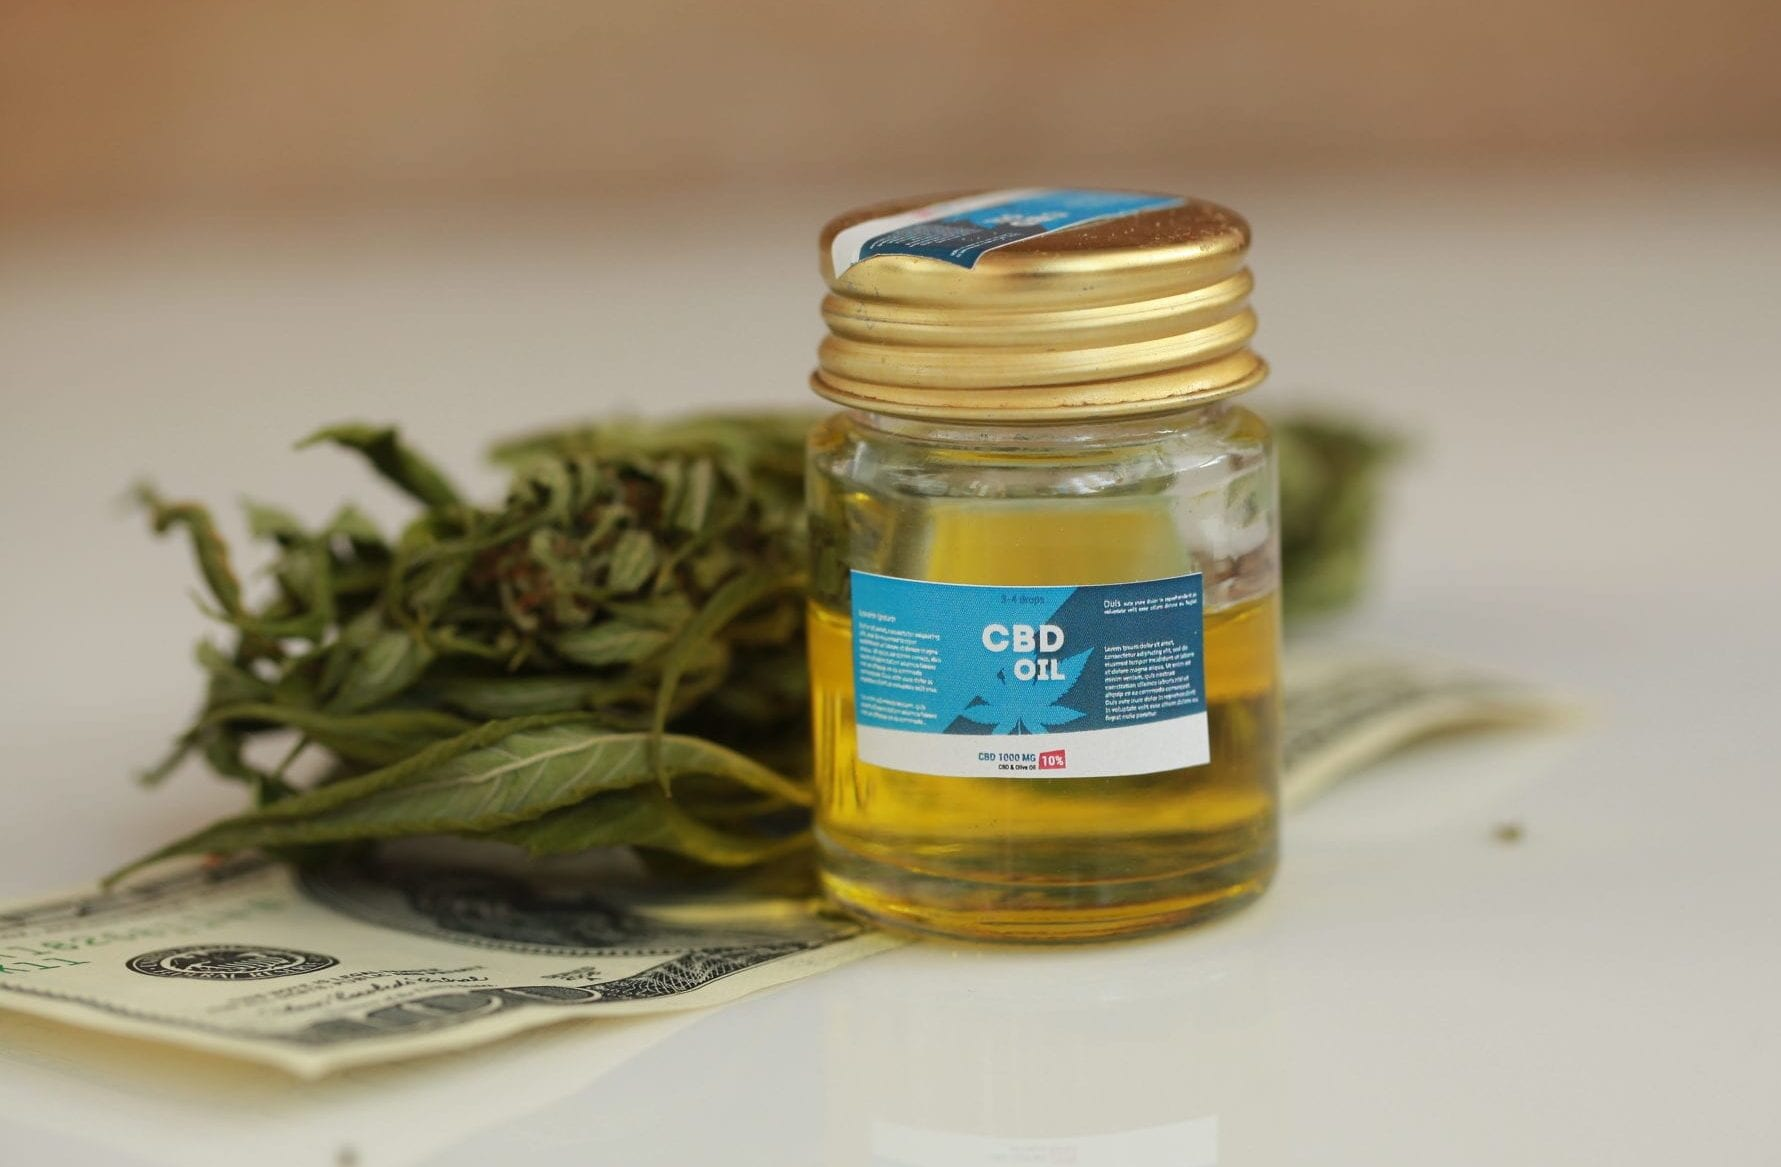 This is the year CBD will be remembered for going mainstream in the United States with sales surging to US$5 billion, according to a new Brightfield Group report.